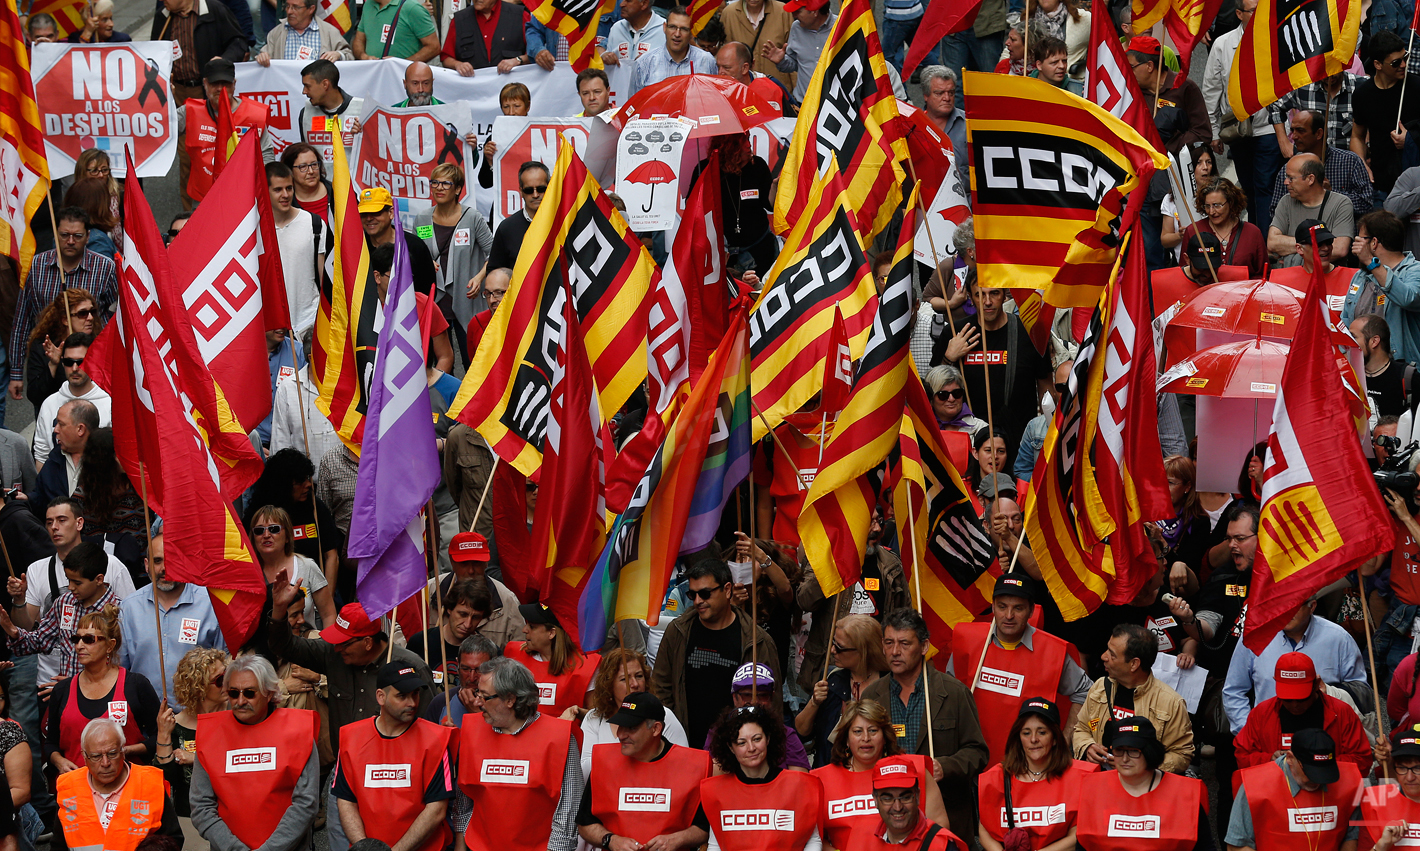 People protest during a May Day rally in the center of Barcelona, Spain, Friday, May 1, 2015. May 1 is celebrated as the International Labor Day or May Day across the world. (AP Photo/Manu Fernandez)